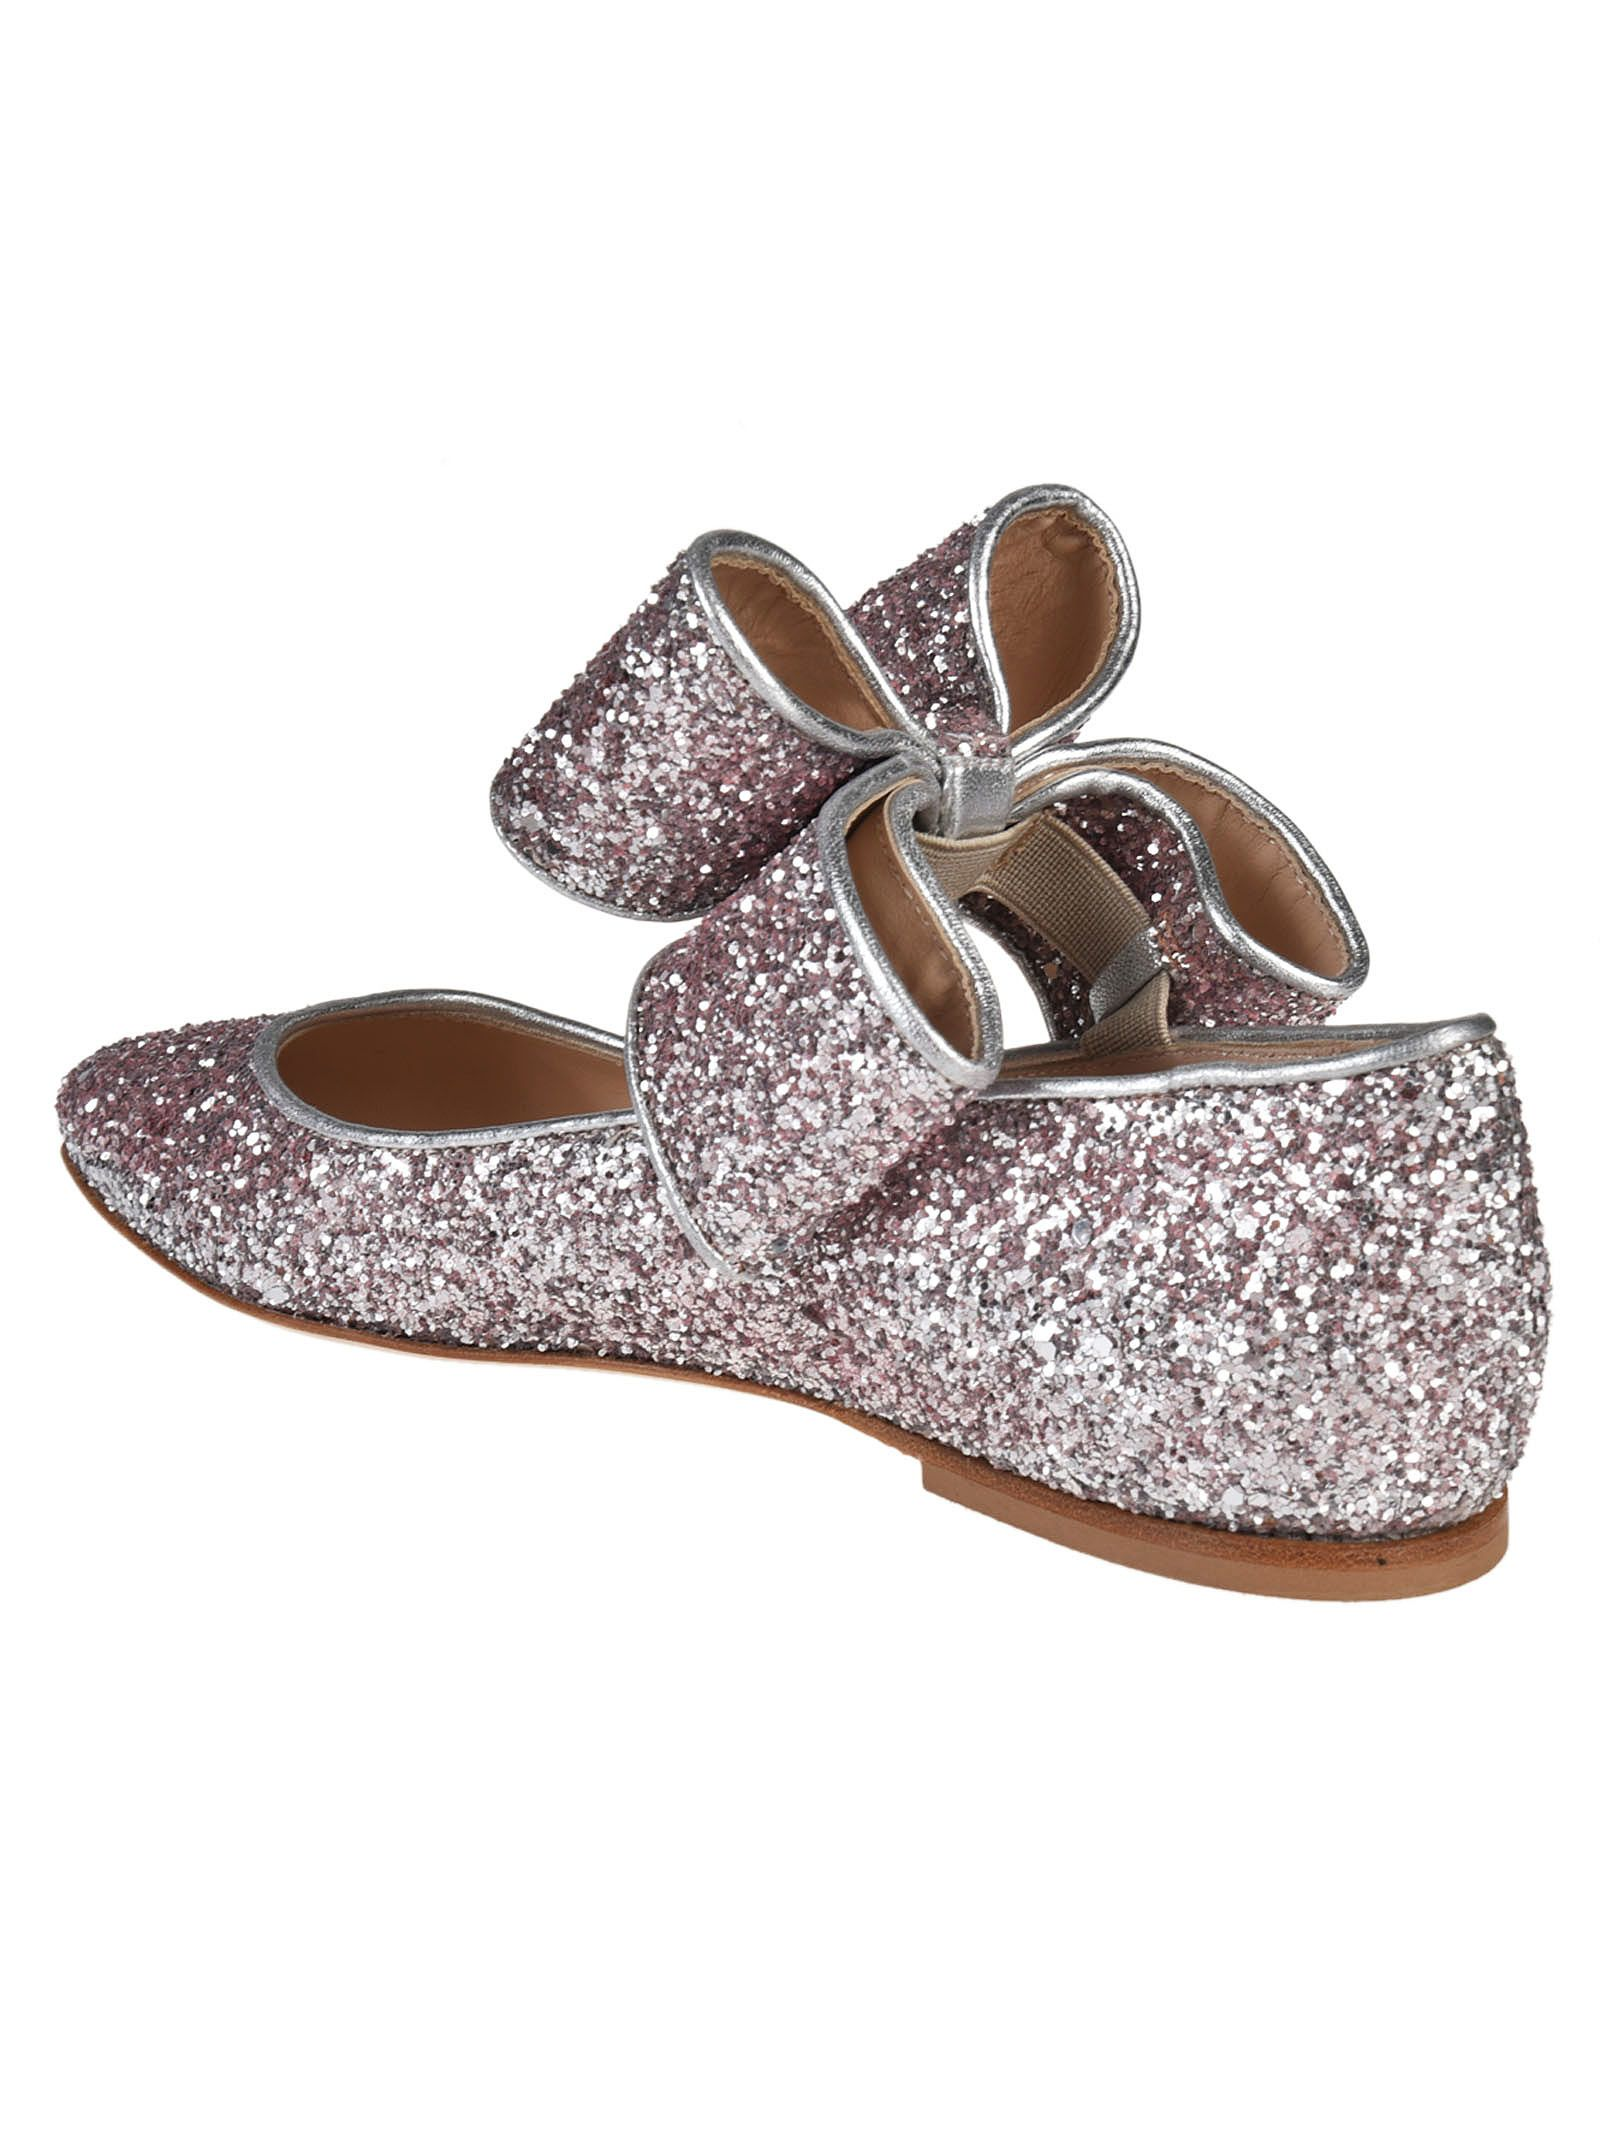 clearance great deals Polly Plume Bonnie bow ballerinas buy online new sale lowest price sRB7oY4N67